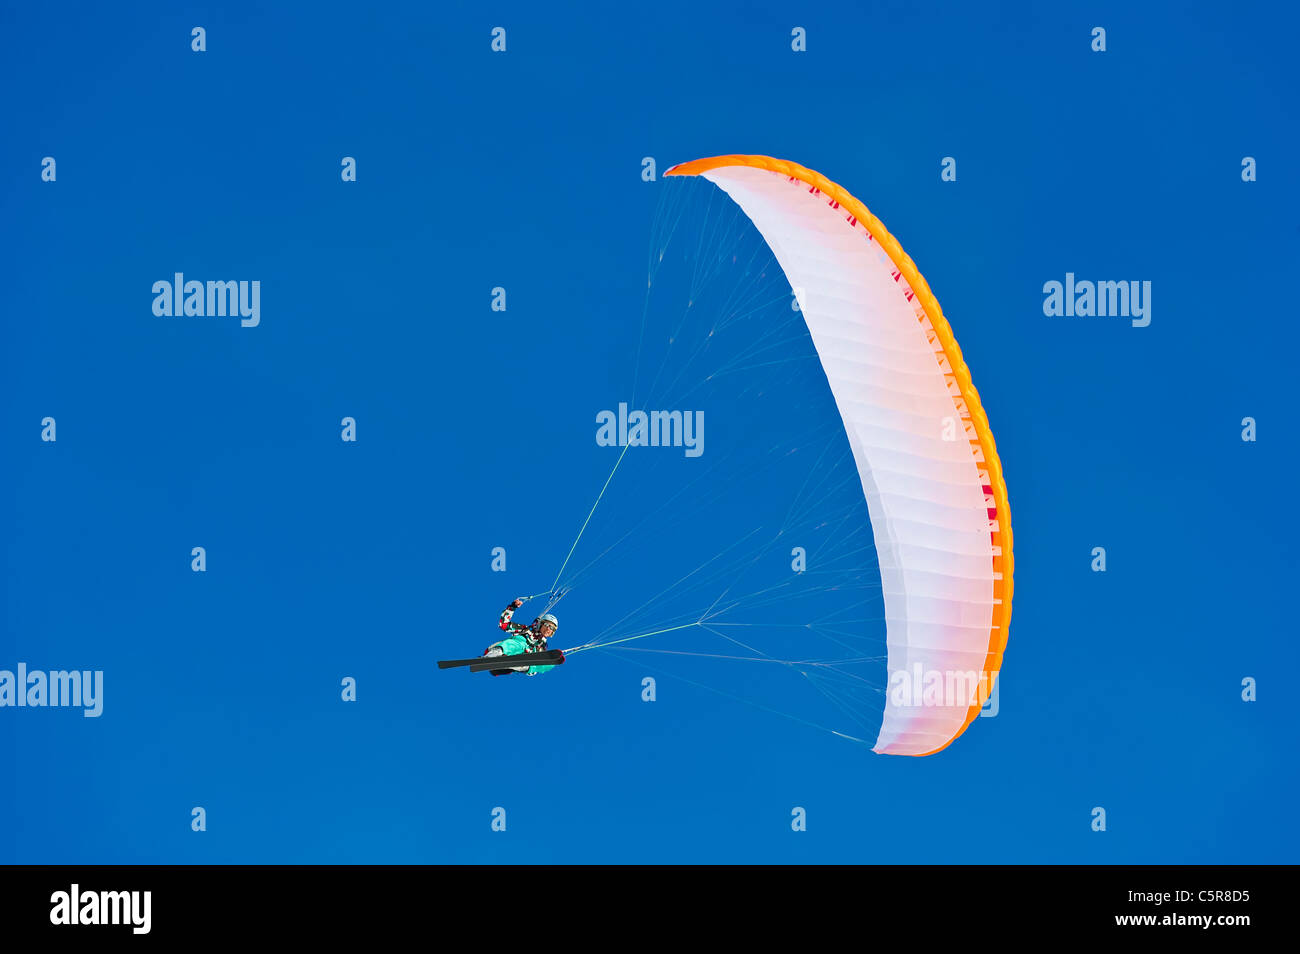 A Paraglider pilot smiles as makes makes a fast banked turn. - Stock Image